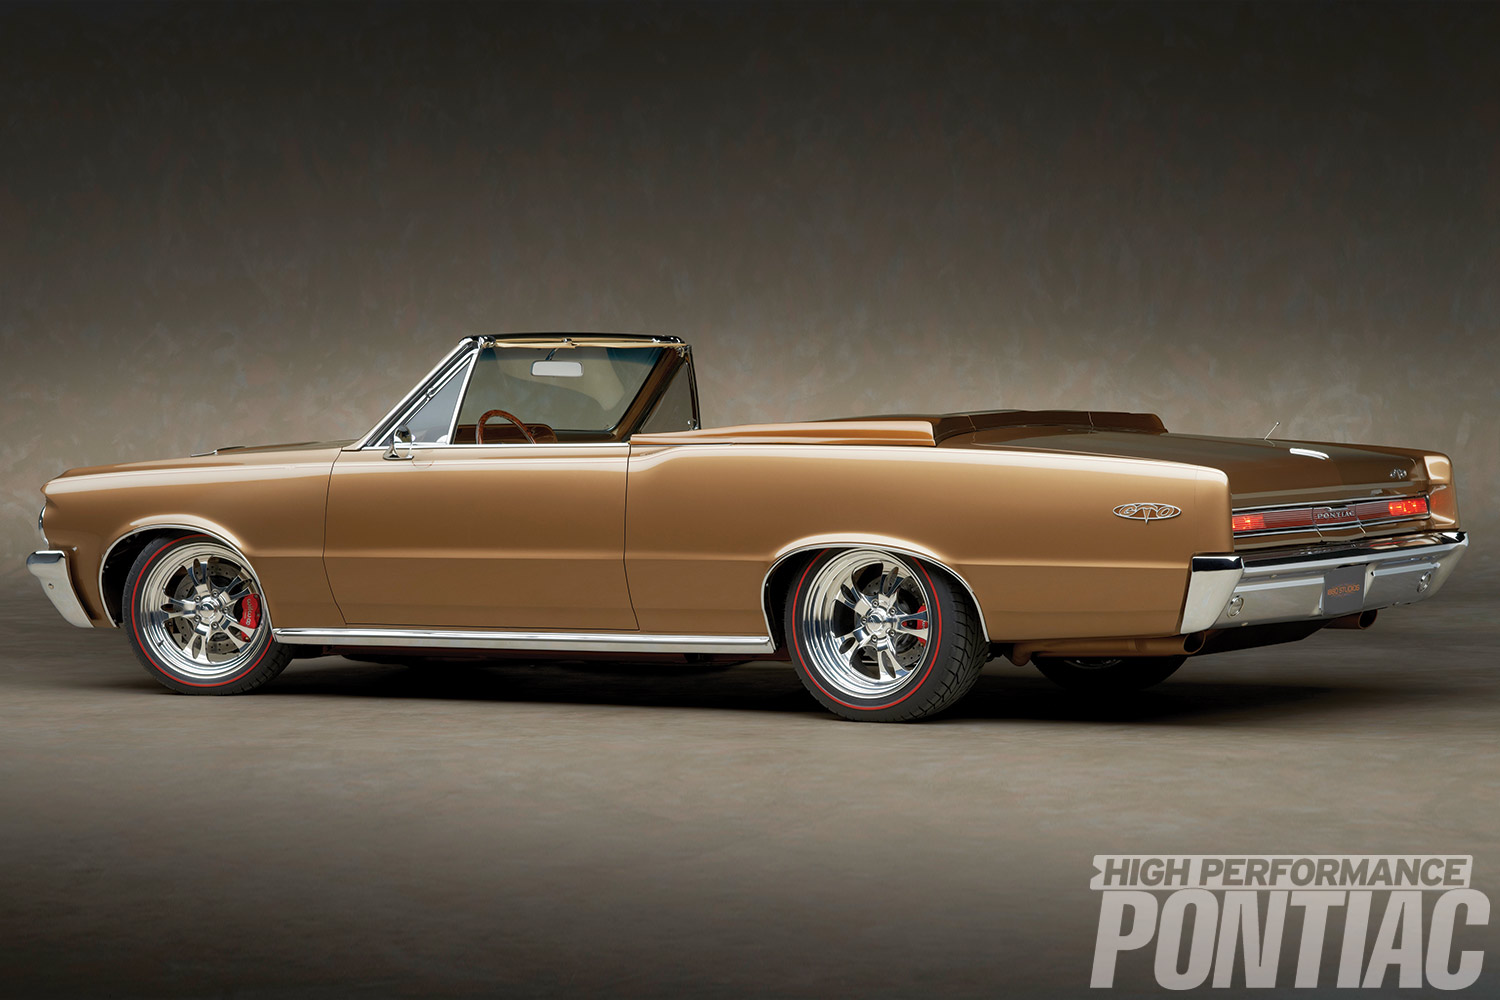 Beyond the rolling stock and obvious attention to bright work, the absence of exterior door handles and the unique Mocha Nut color are the only immediate indications that it's not a typical '64 GTO. The GTO's convertible boot is a three-piece fiberglass tonneau cover created by Run Rite Classics. The 2.5-inch exhaust was treated to a unique process that lends to an exhaust system that's completely body colored.